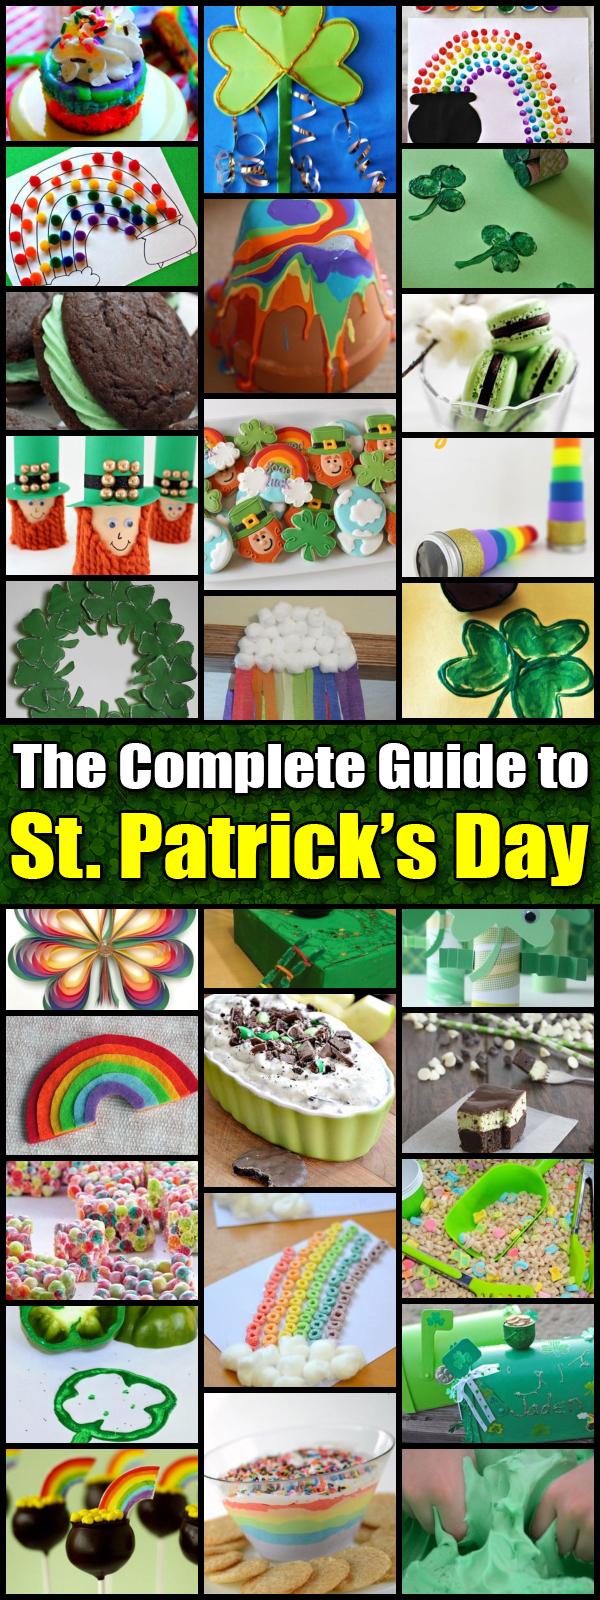 The Complete Guide to St. Patrick's Day - Holiday Vault